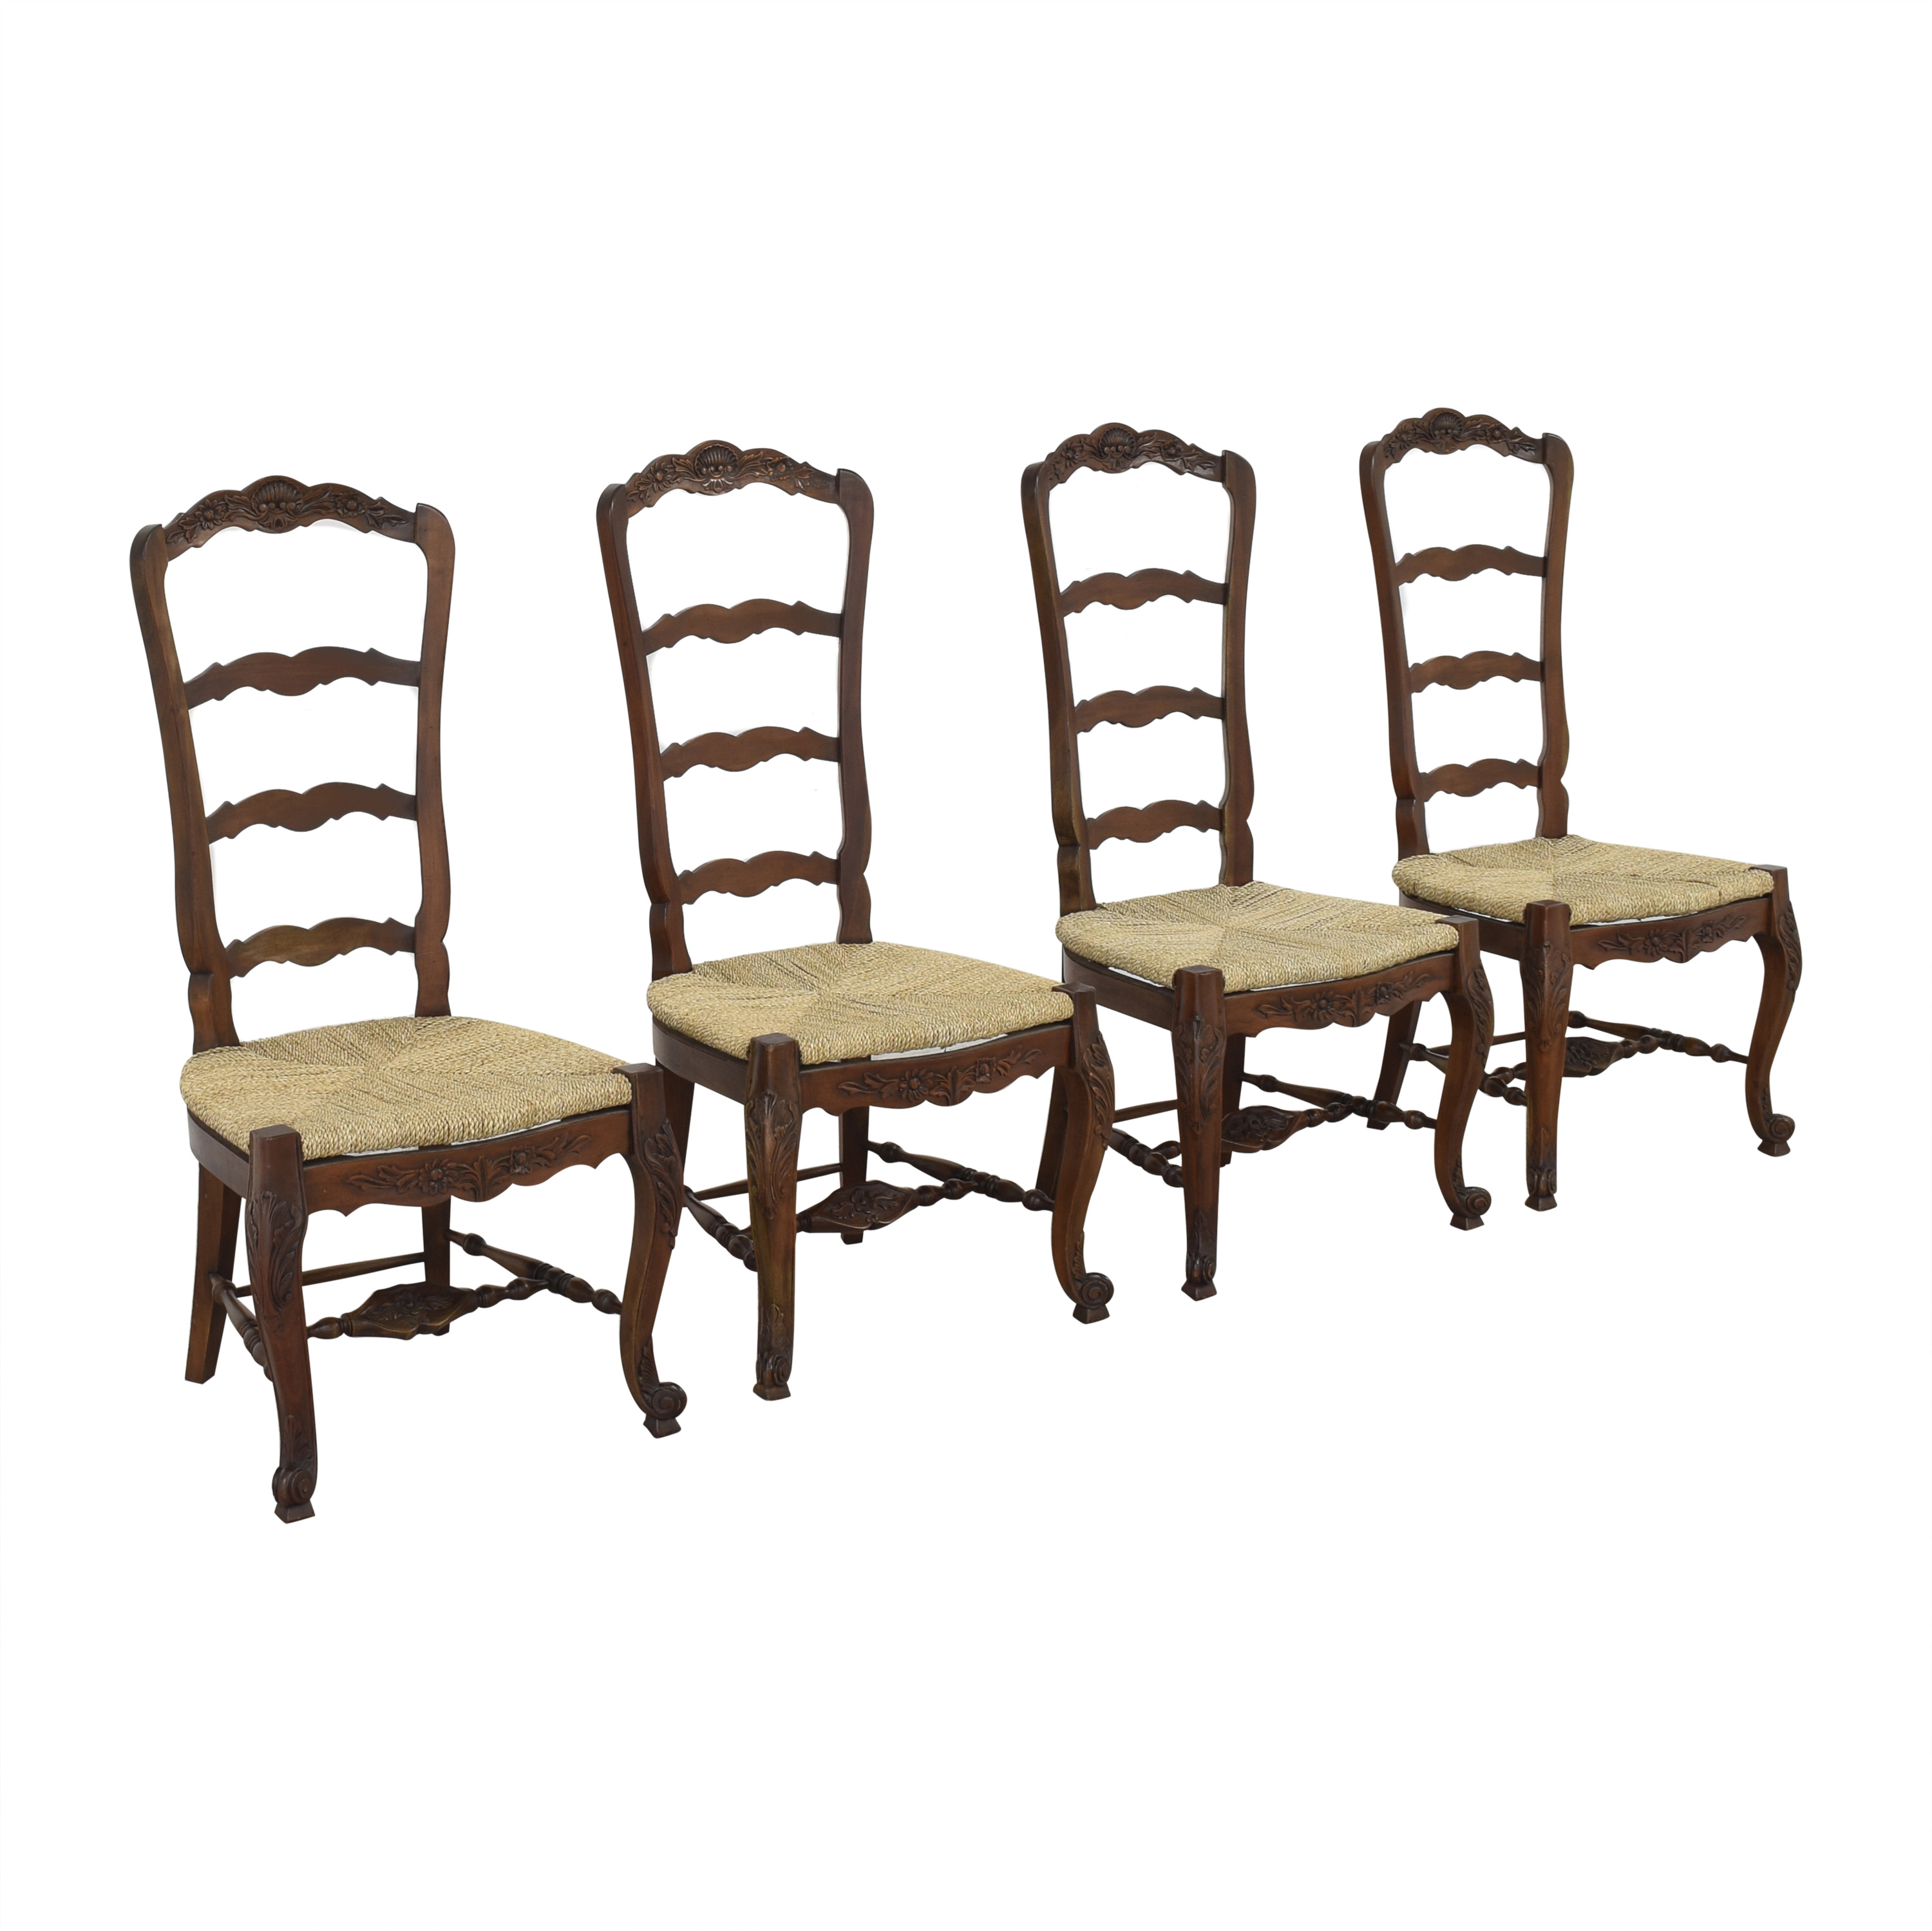 Marie Albert Marie Albert French Country Ladder Back Dining Chairs coupon